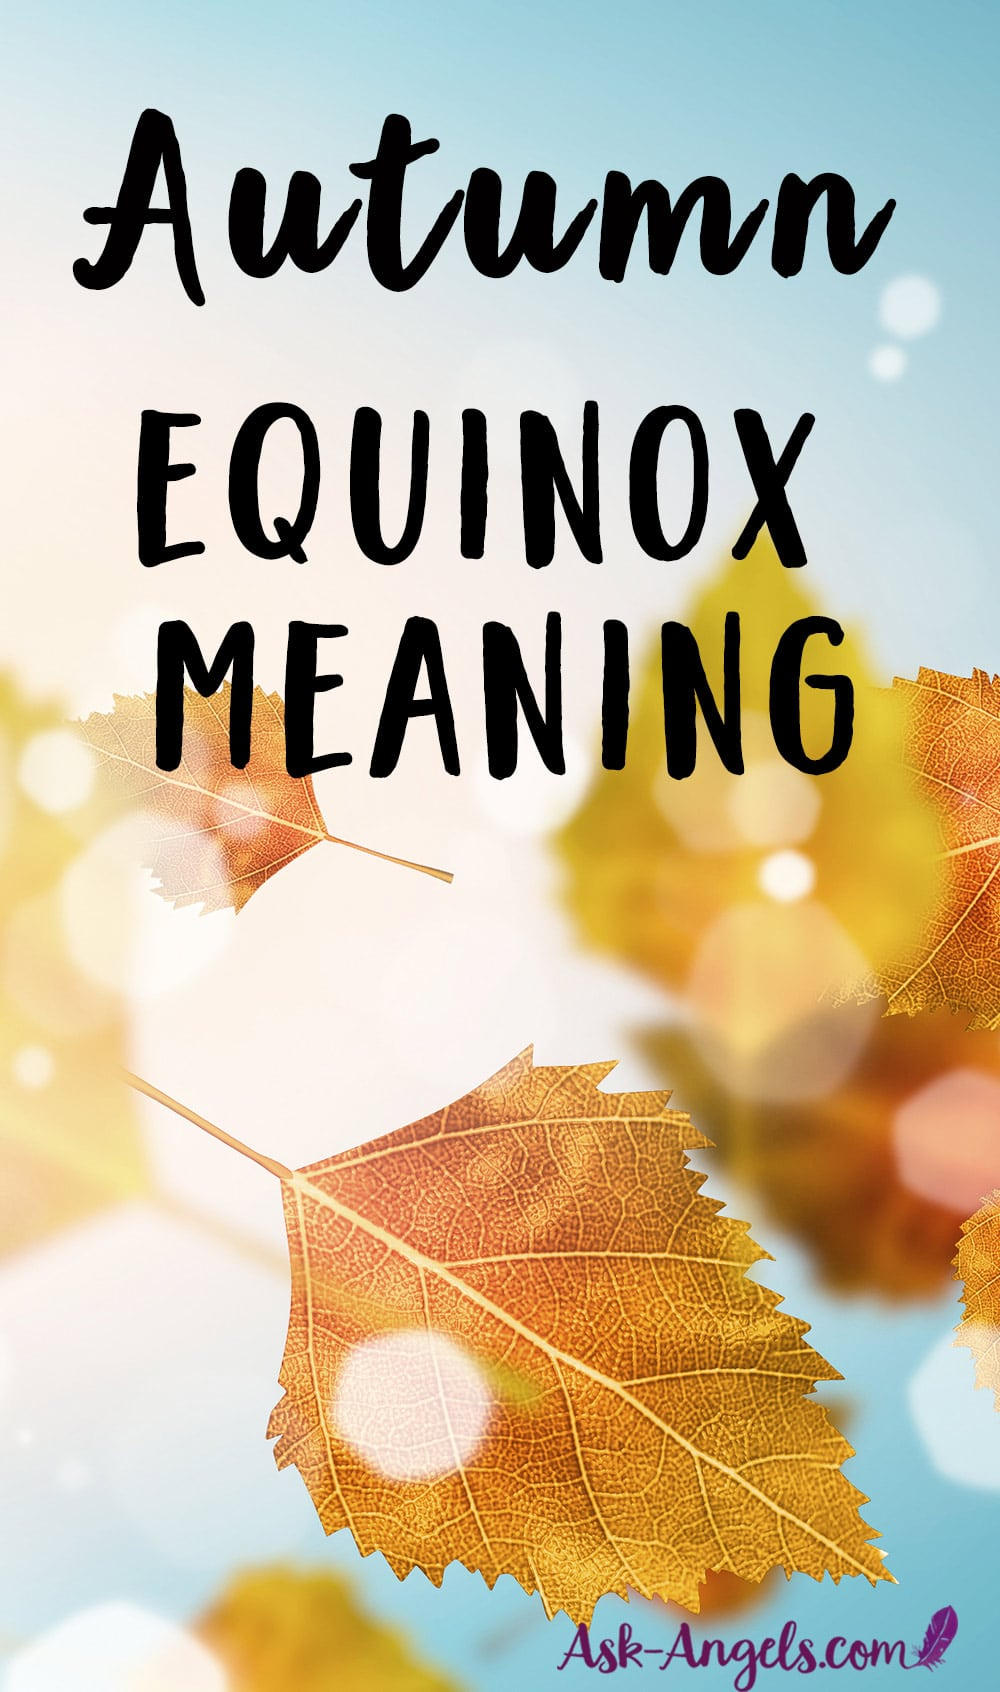 Autumn Equinox Meaning